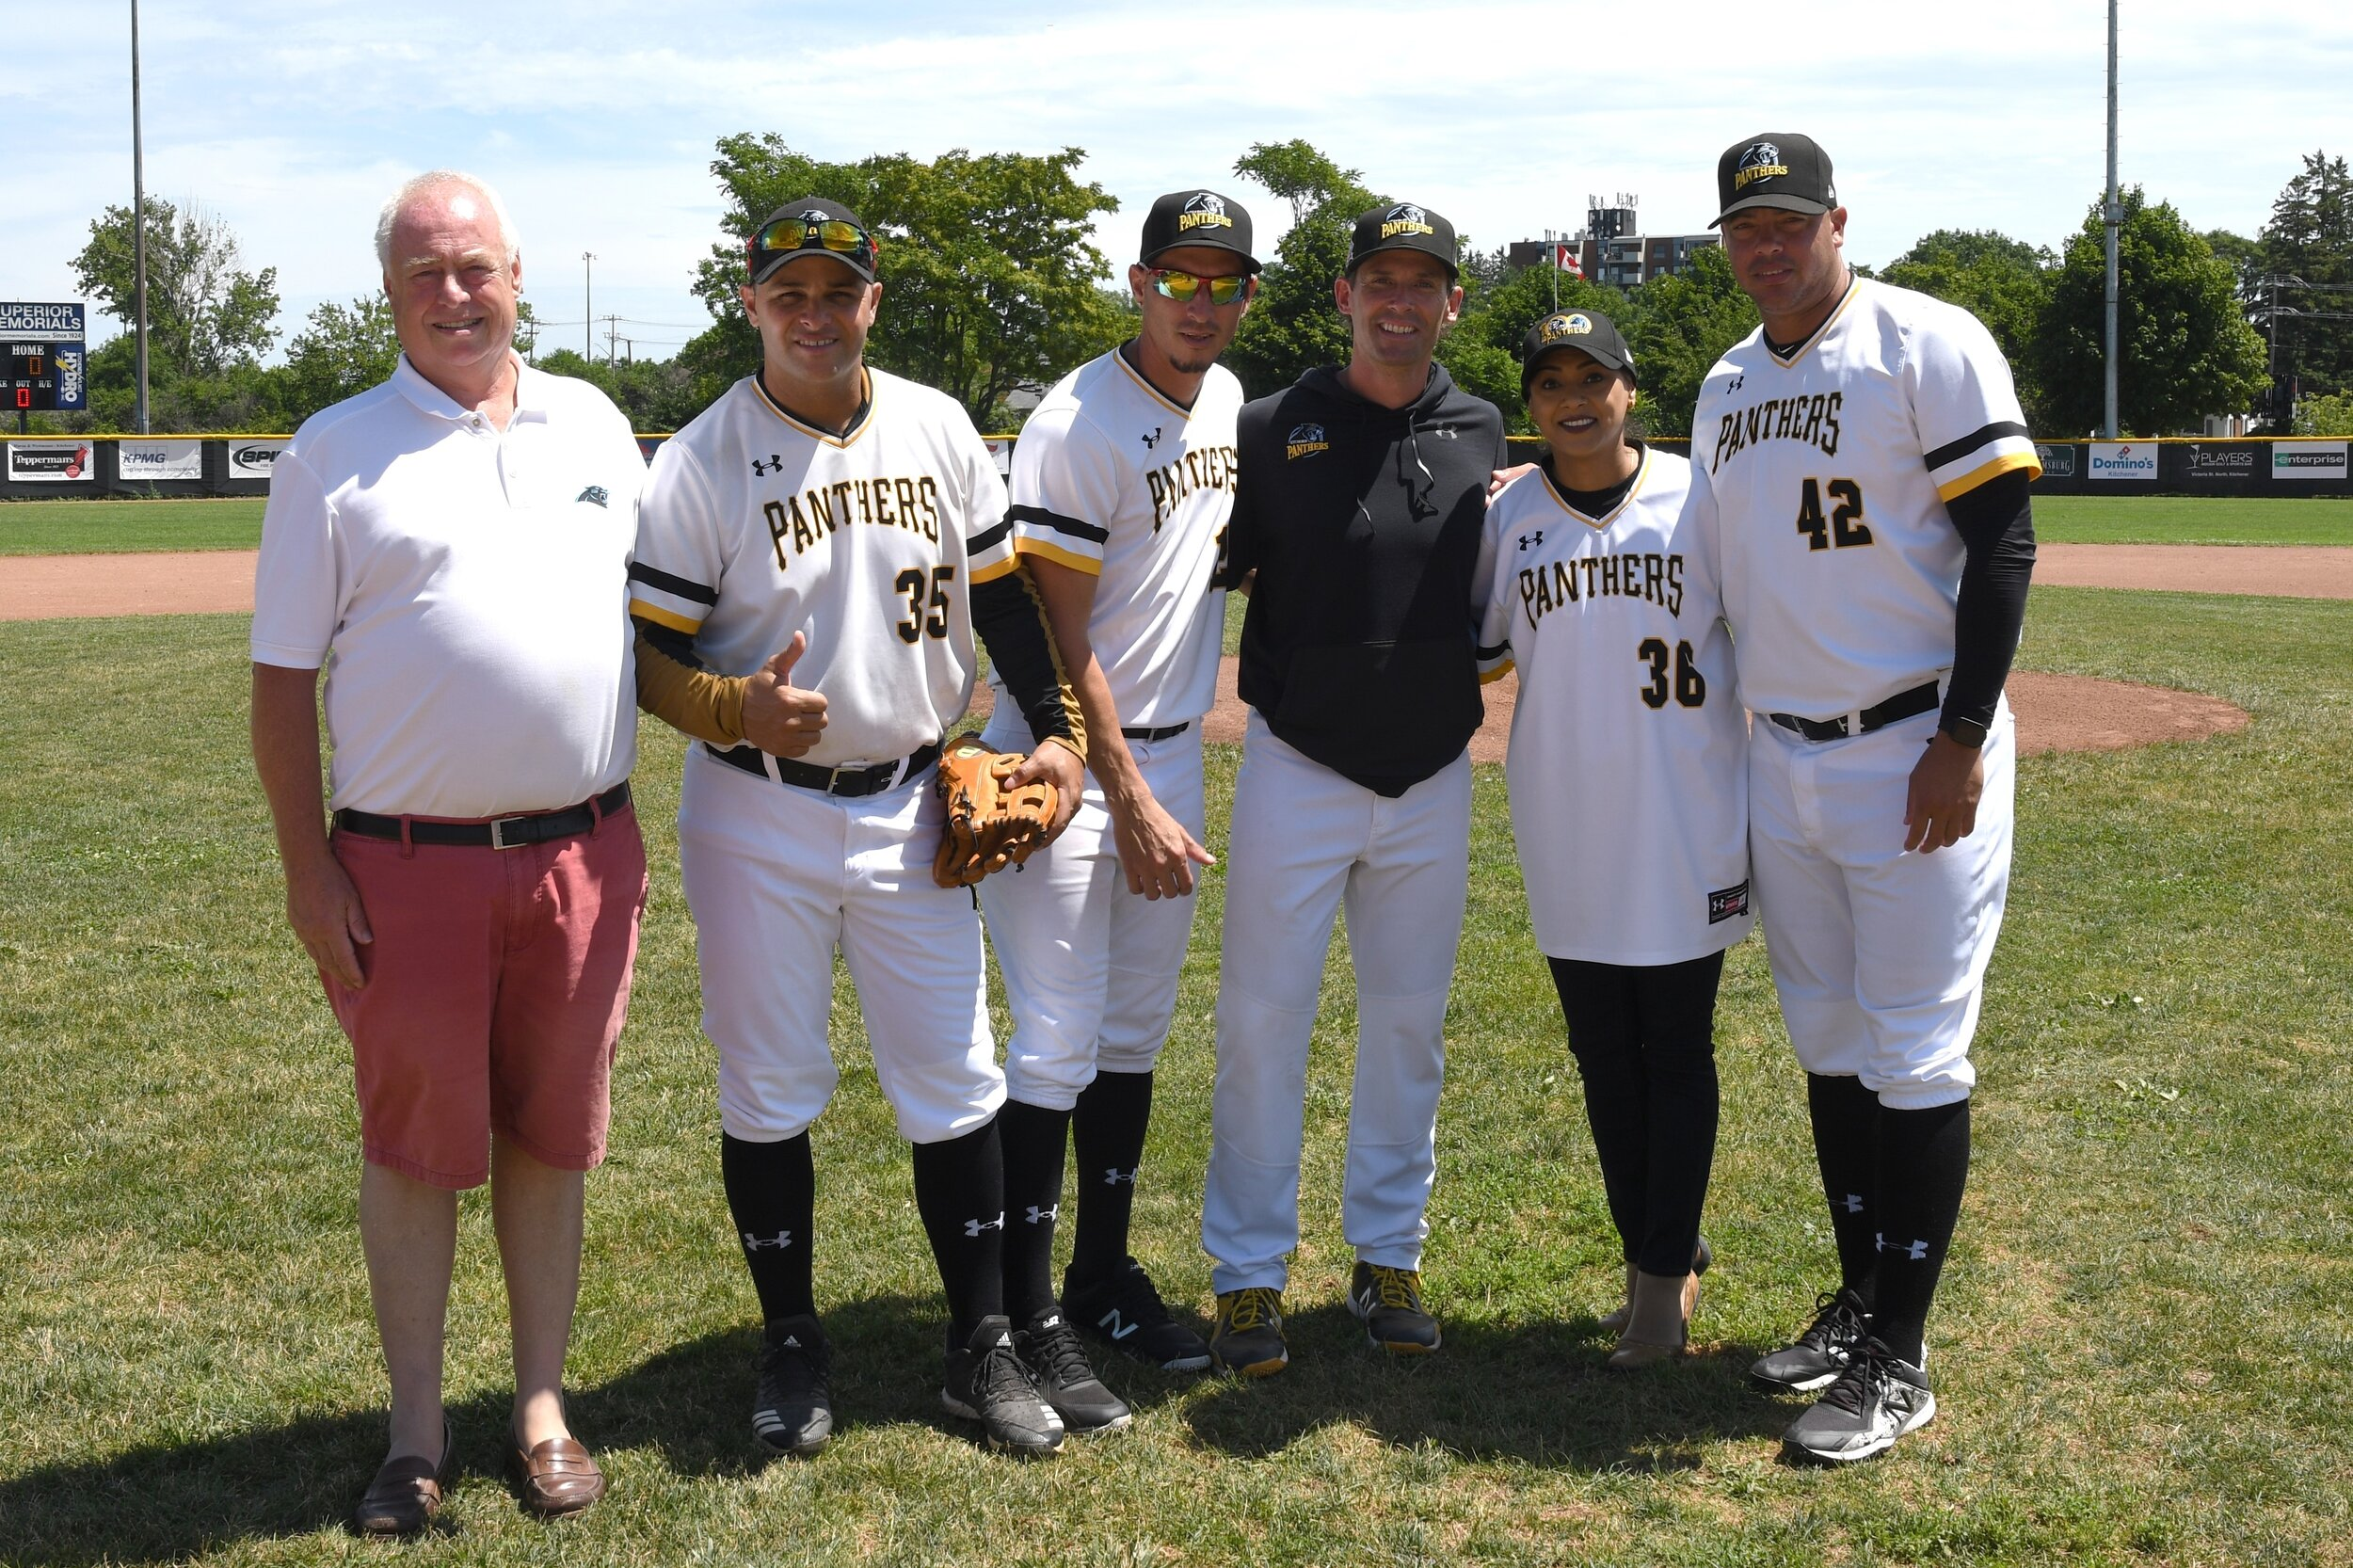 Kitchener Panthers GM Mike Boehmer, left, poses with Kitchener MP Bardish Chagger, second from right, along with Panthers manager Luke Baker and Cuban players Yorbis Borroto (35), Yuen Soccaras in middle, and Miguel Lahera (42). Missing is Yoennis Yera. Photo by Dan Congdon